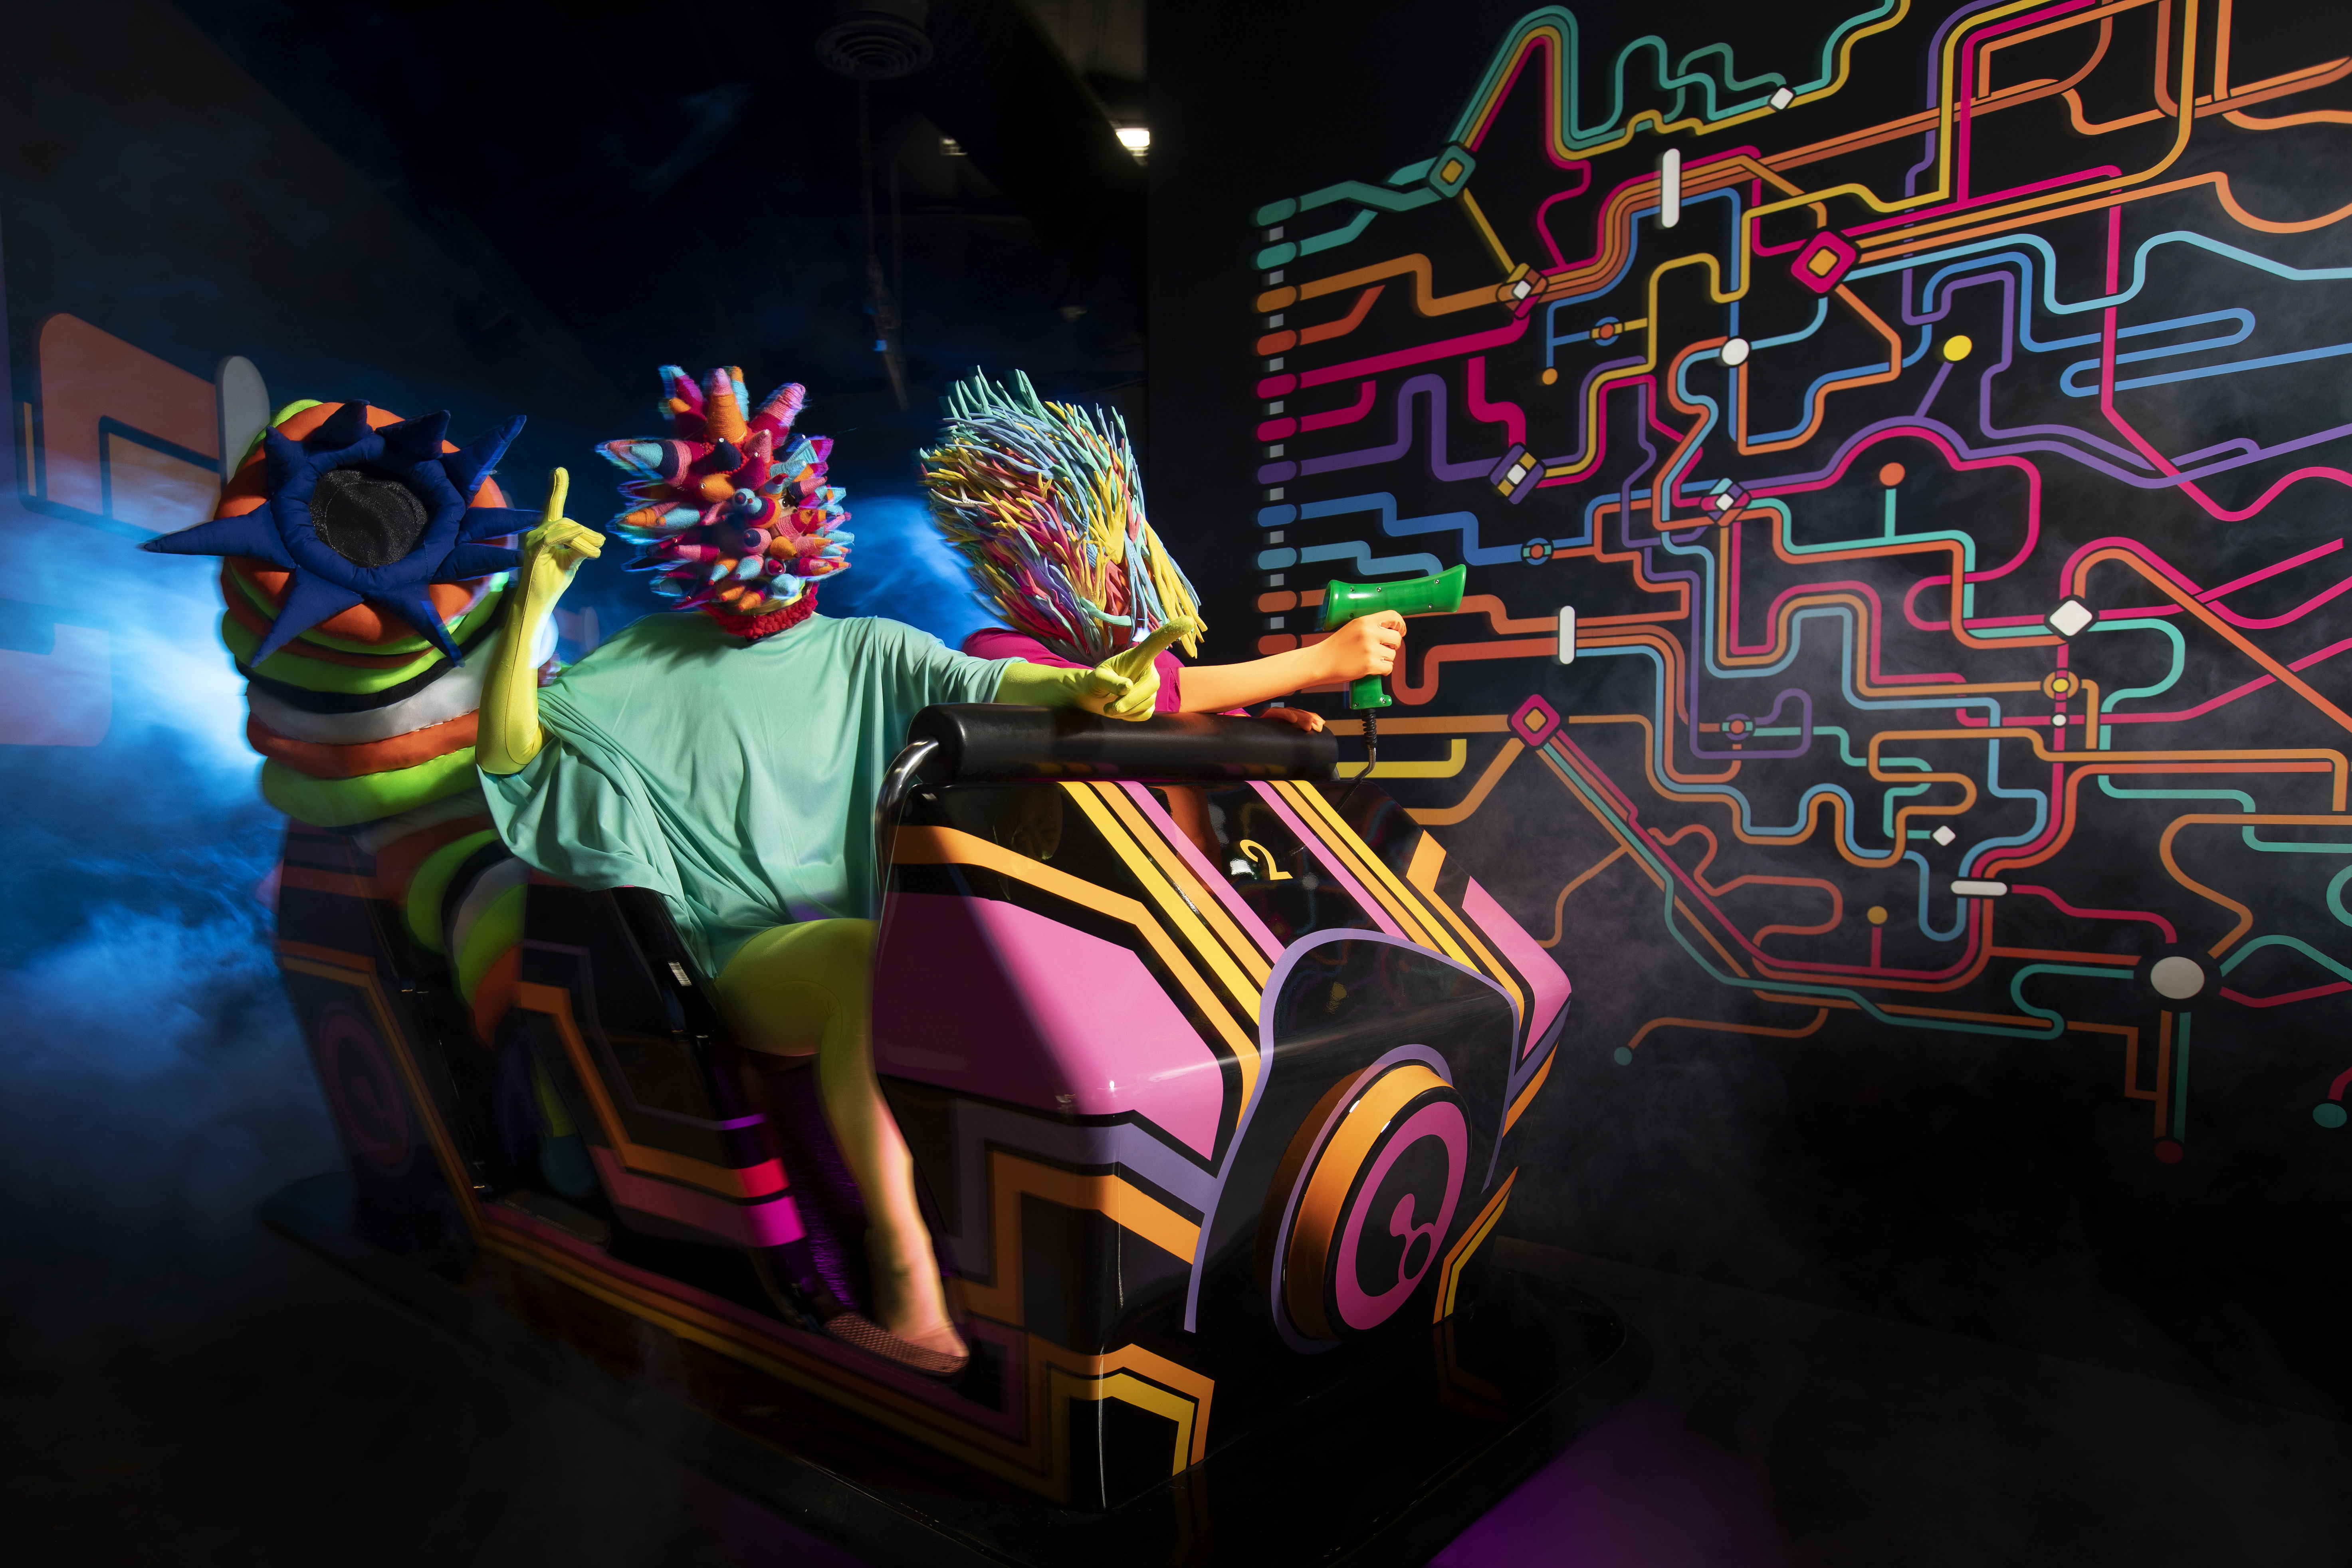 People wearing abstract masks on a rollercoaster with laser guns